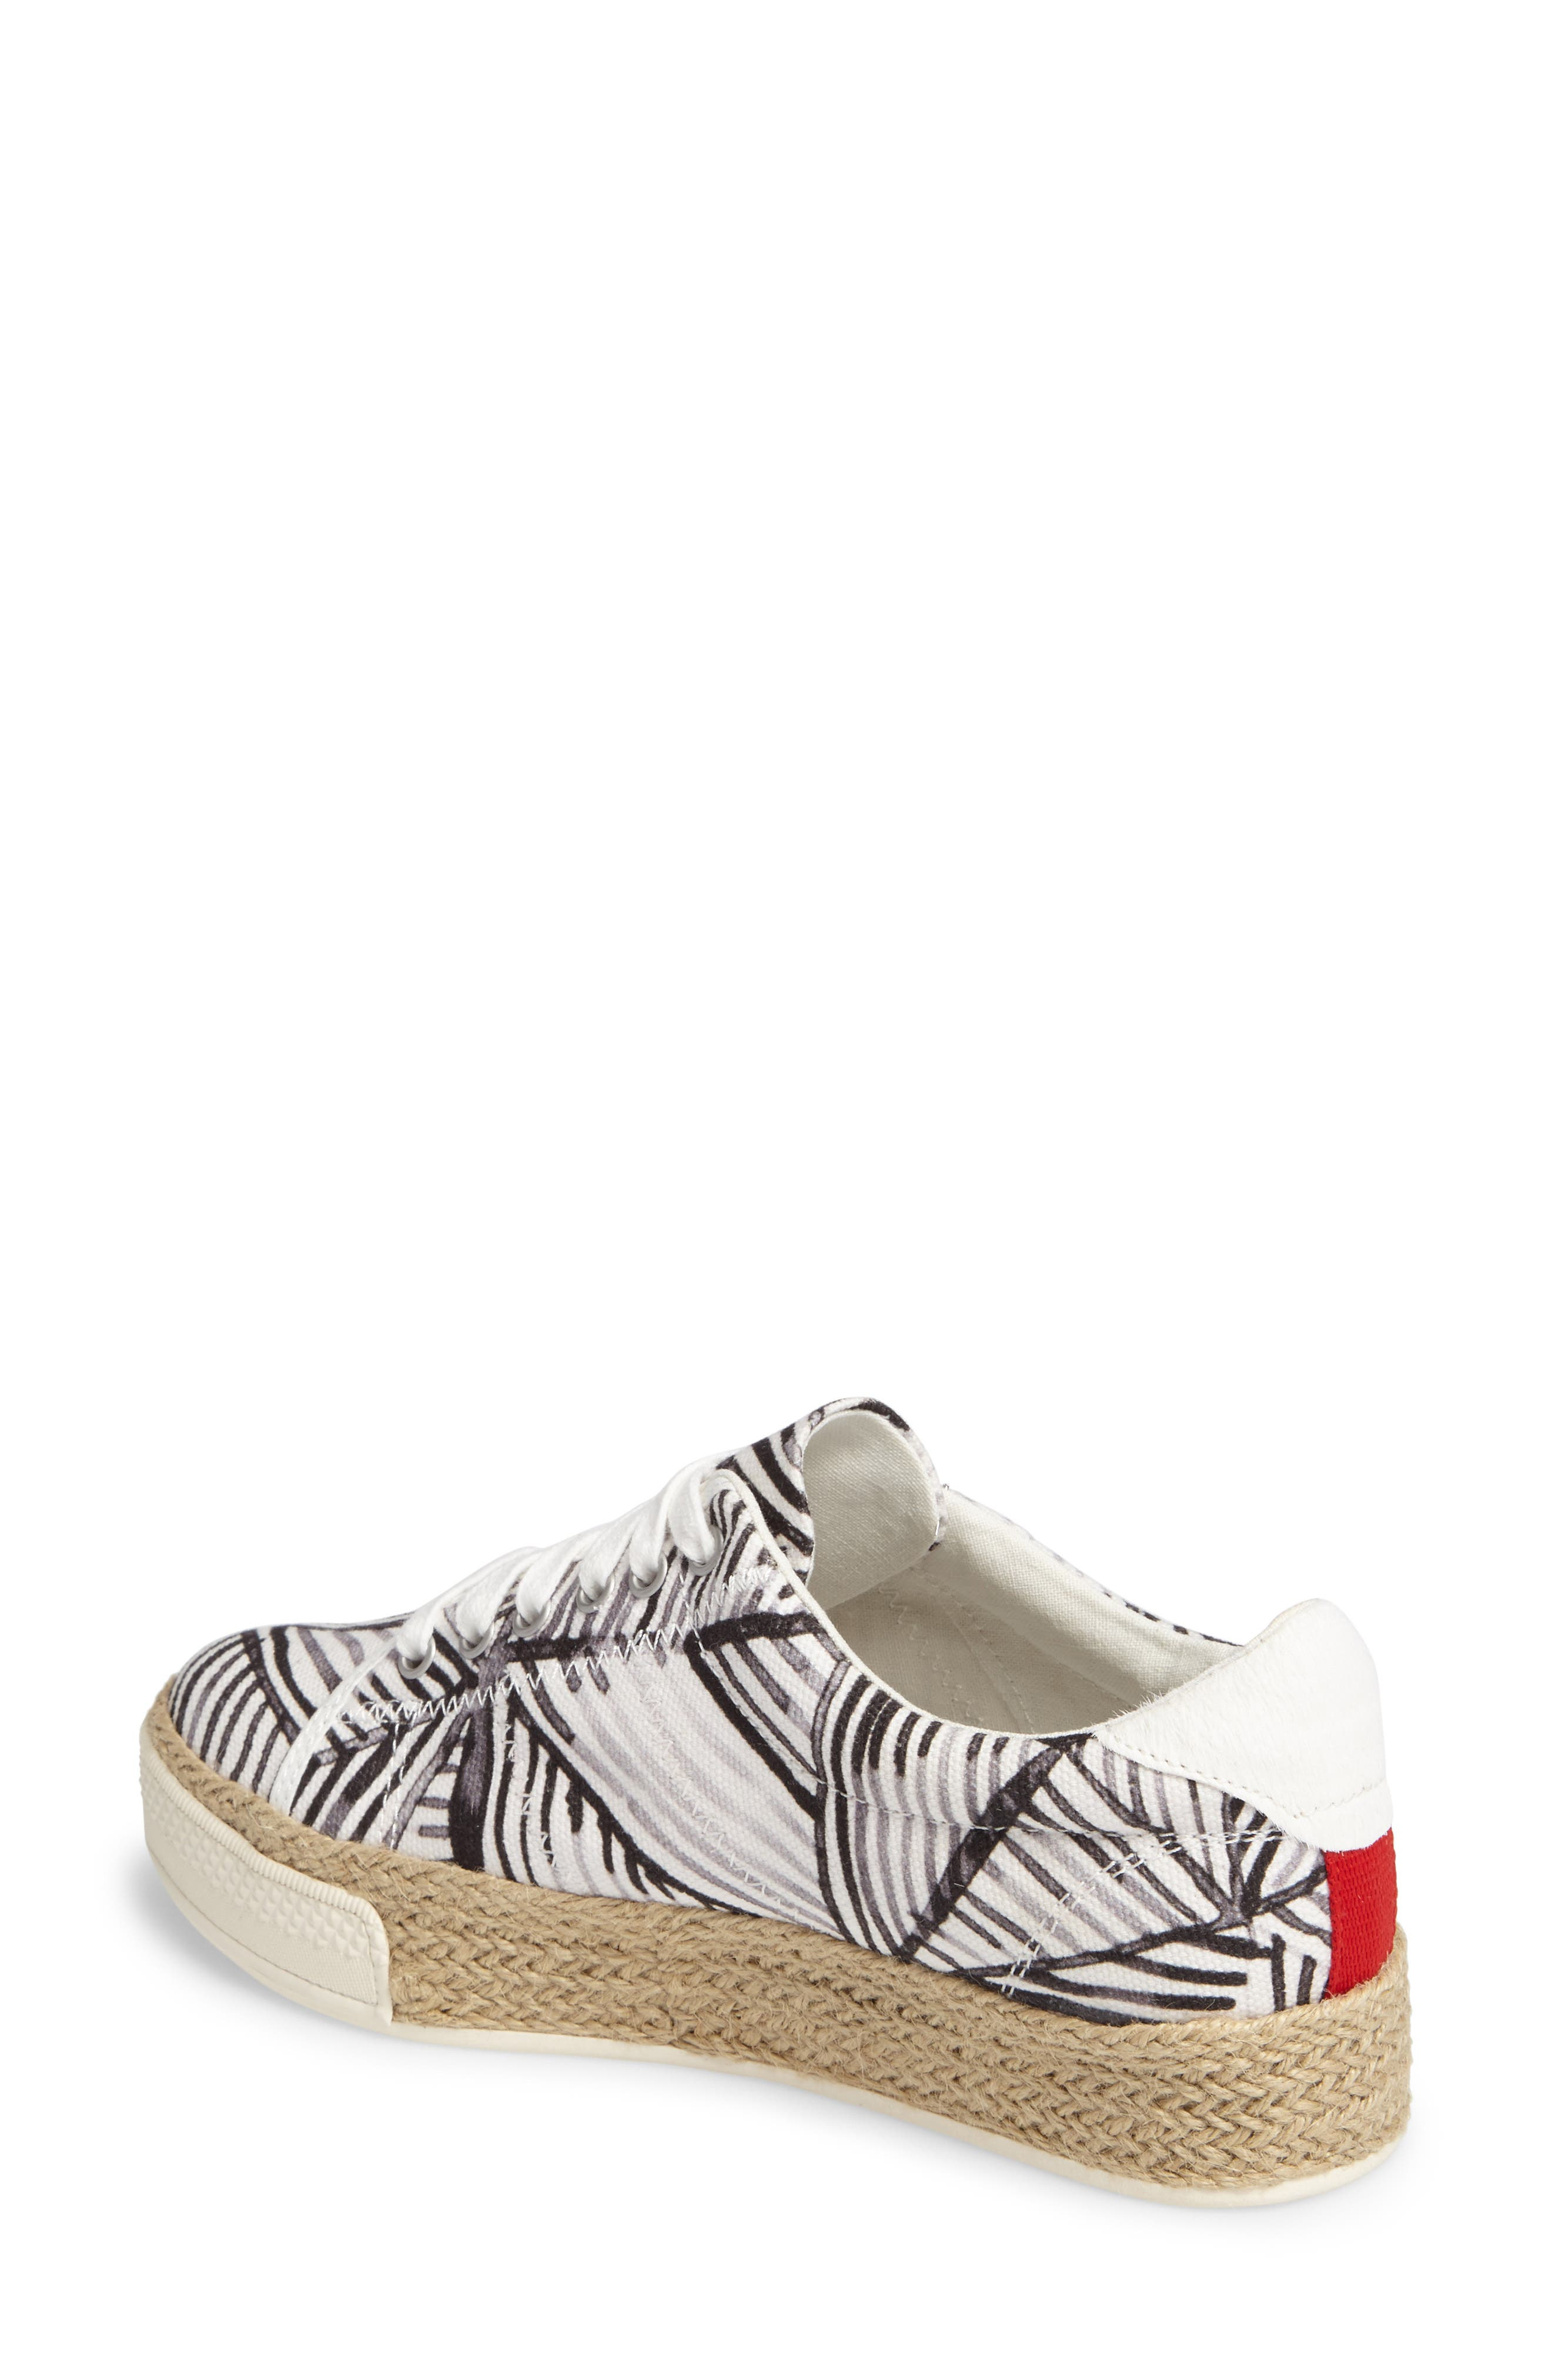 Tala Platform Sneaker,                             Alternate thumbnail 2, color,                             100